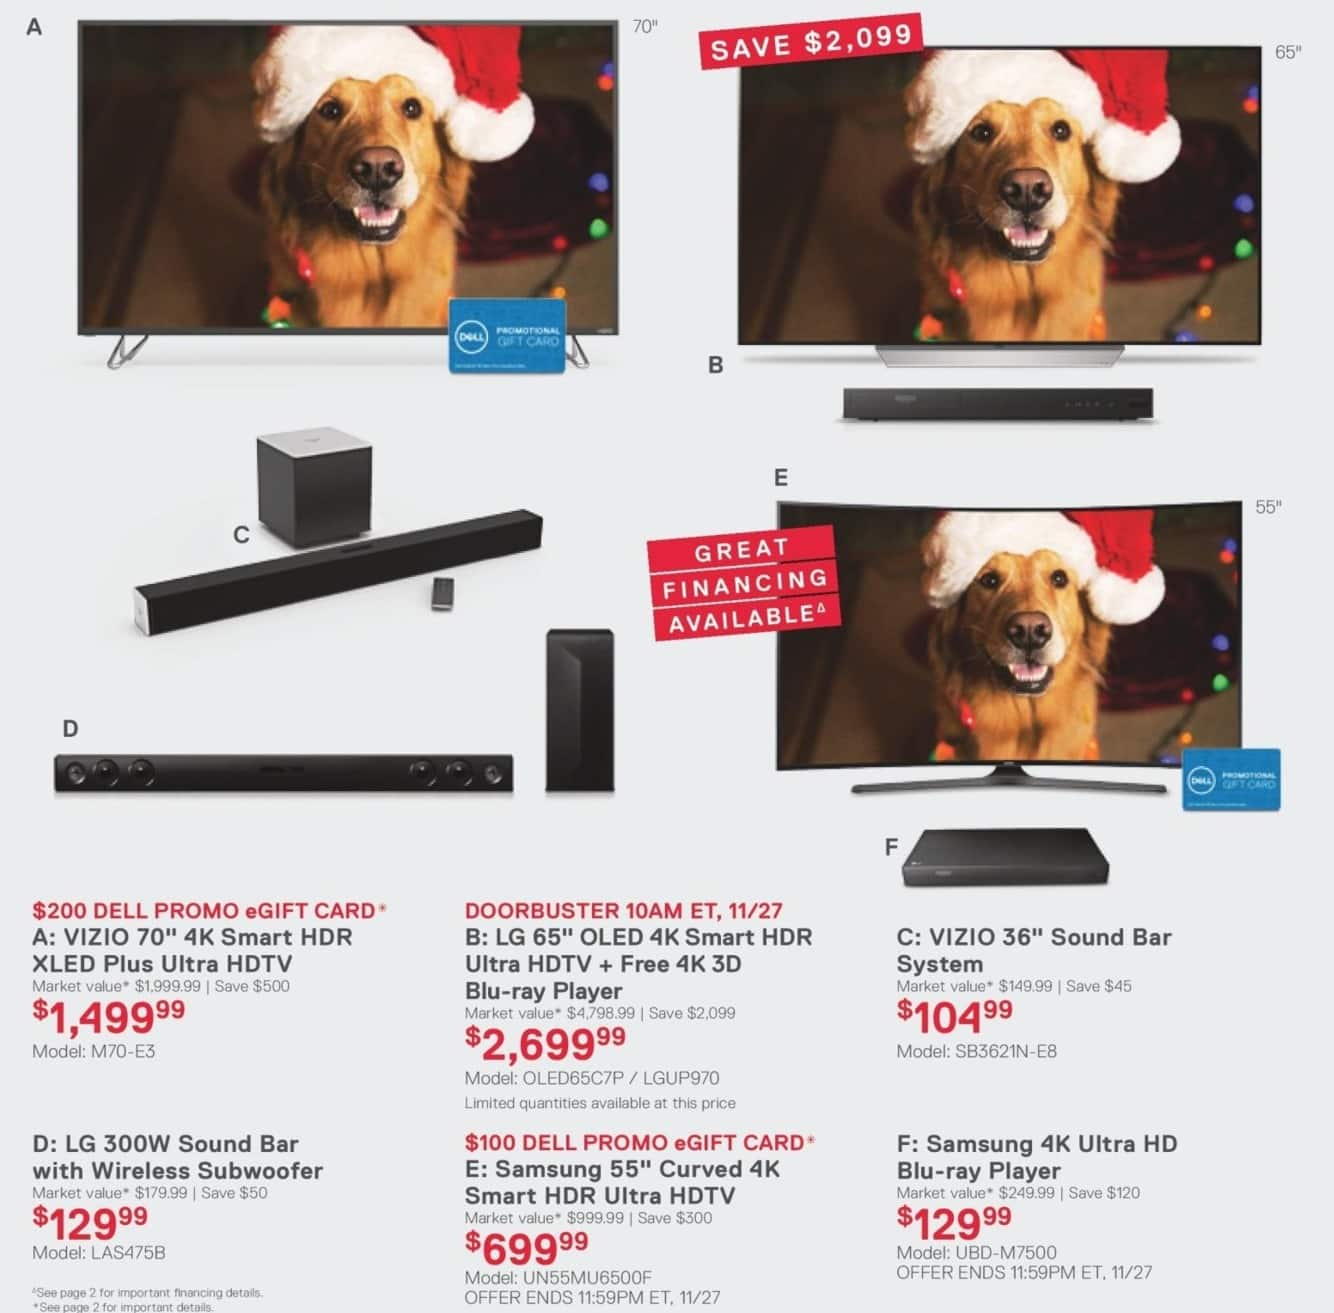 """Dell Home & Office Cyber Monday: 55"""" Samsung 4K HDR Smart Curved Ultra HDTV + $100 Dell Promo eGift Card for $699.99"""